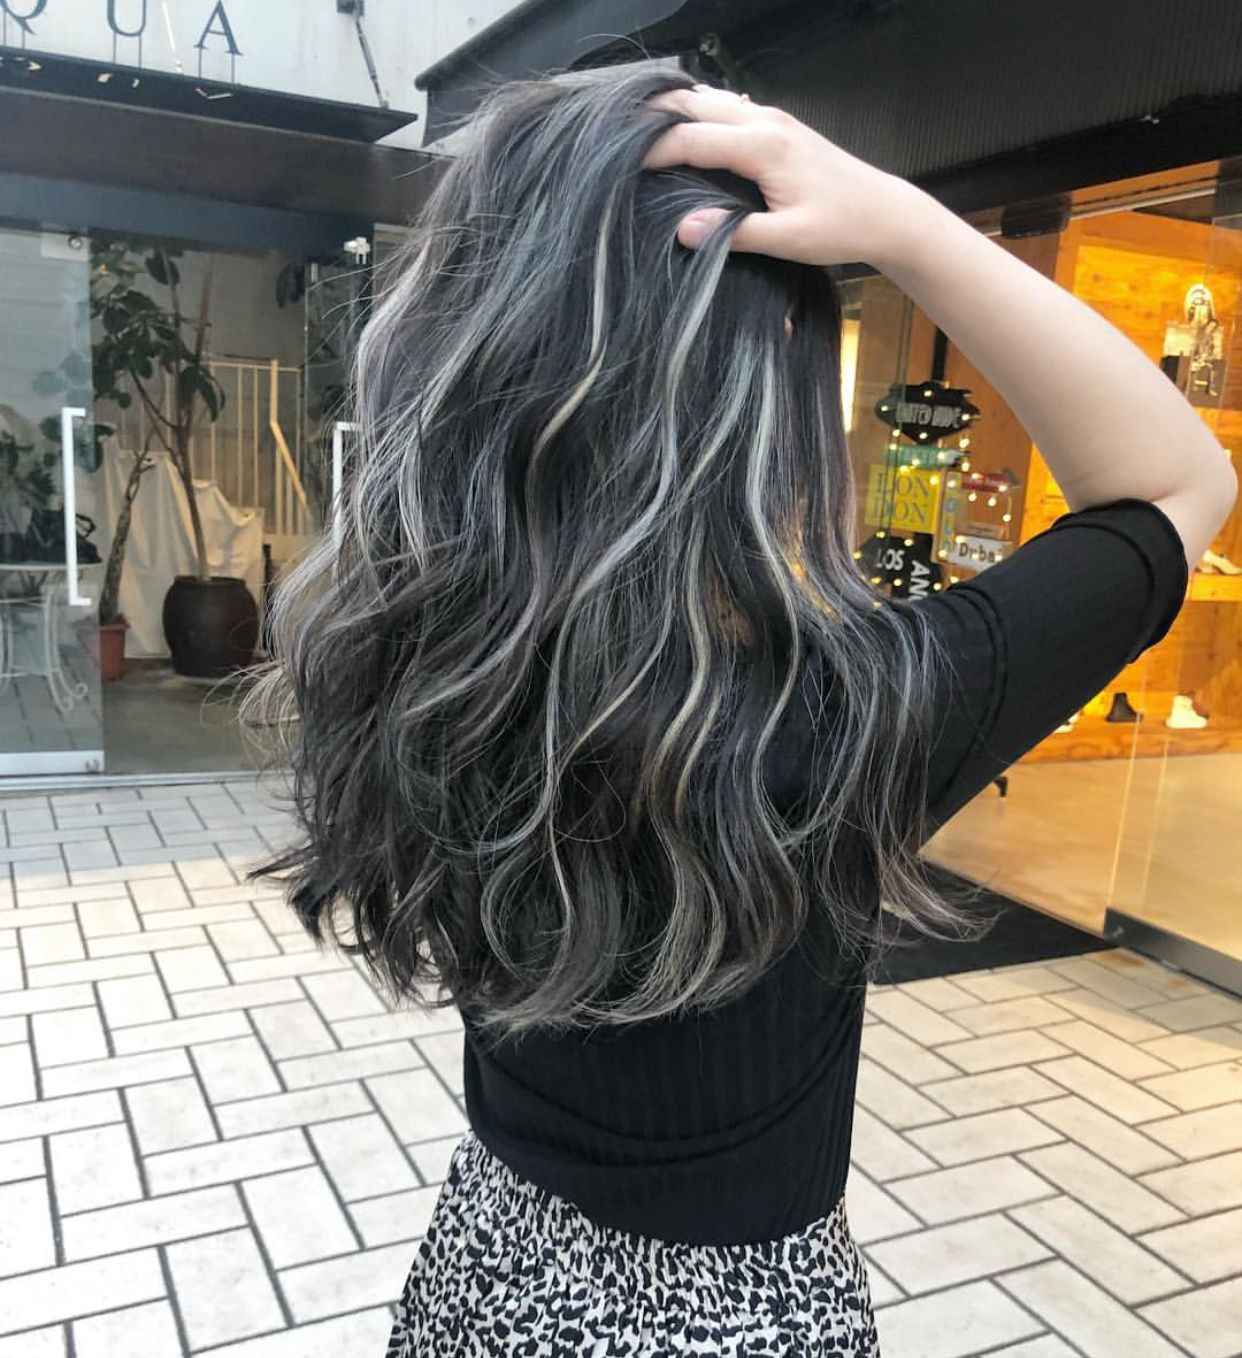 Can T Decide Between Classic Brunette Or Stylish Silver Grey Consider This Hair Color Design That Lets Y Hair Colour Design Ash Hair Color Japanese Hair Salon